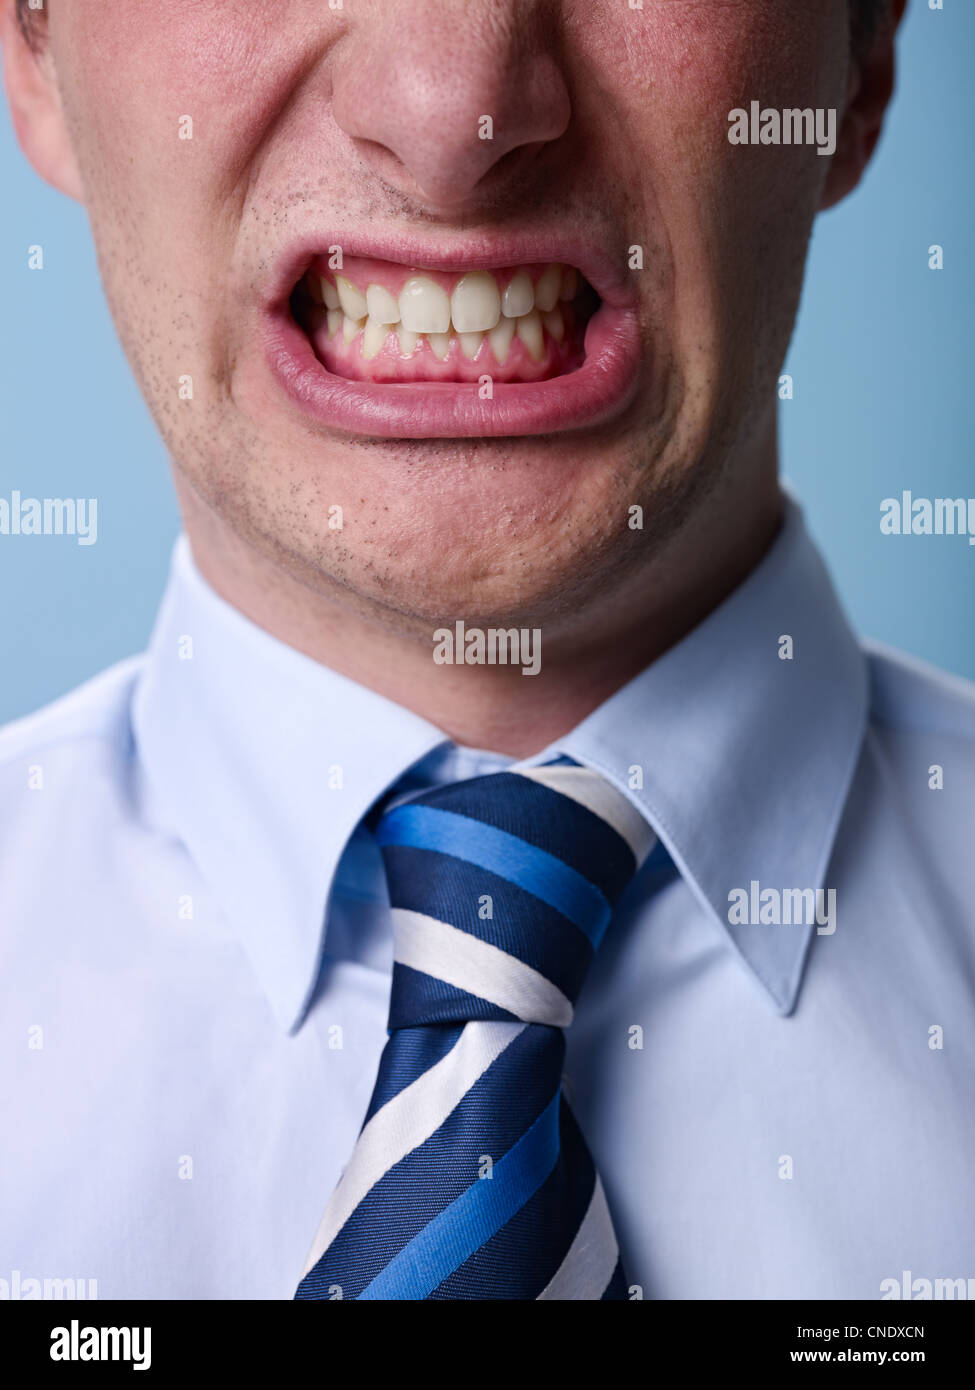 closeup of businessman screaming against blue background. Vertical shape - Stock Image